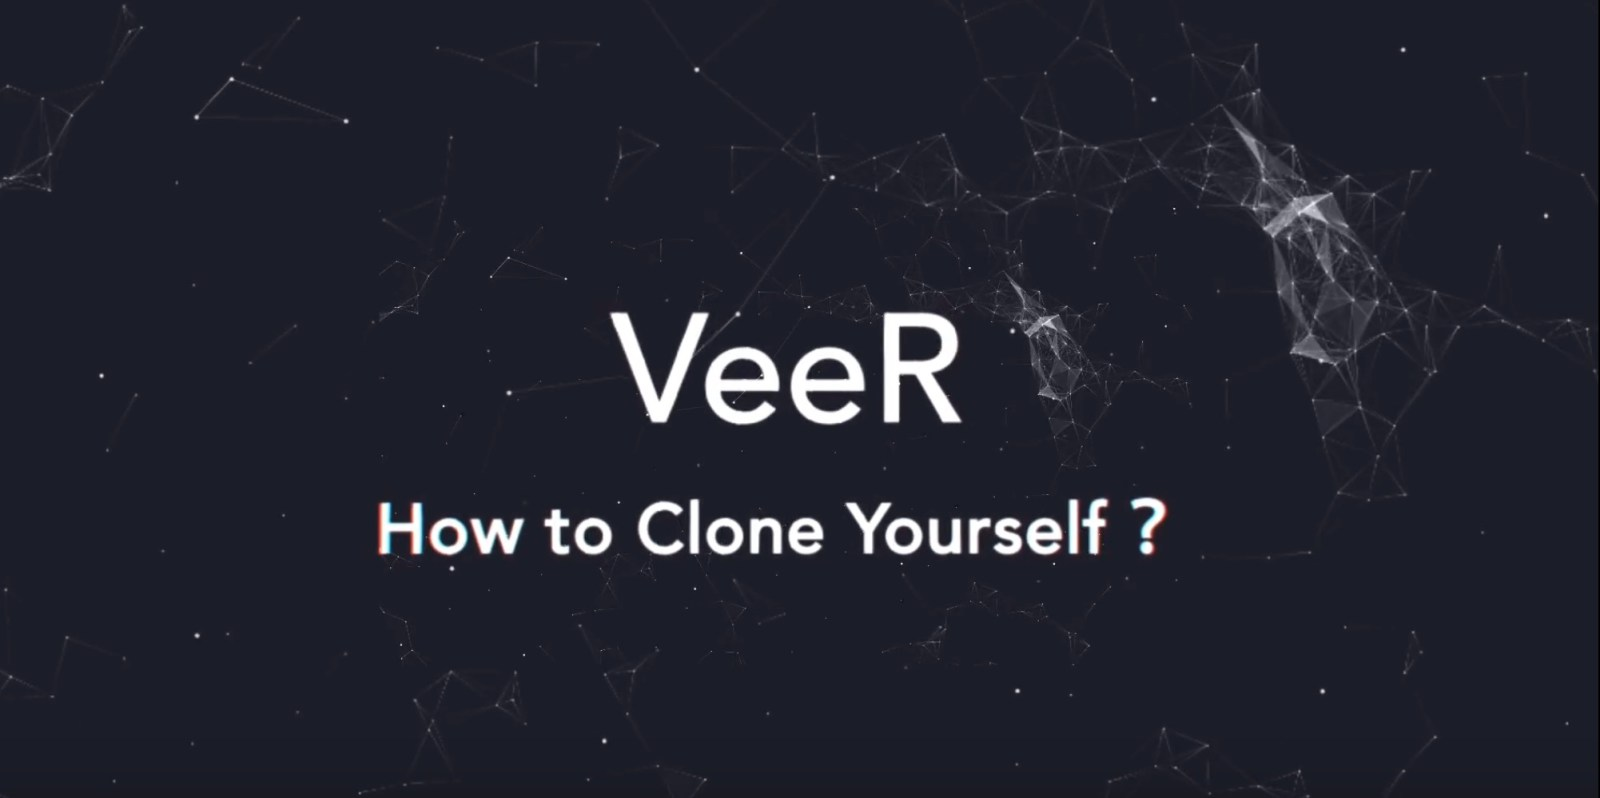 How to Clone Yourself in 360°